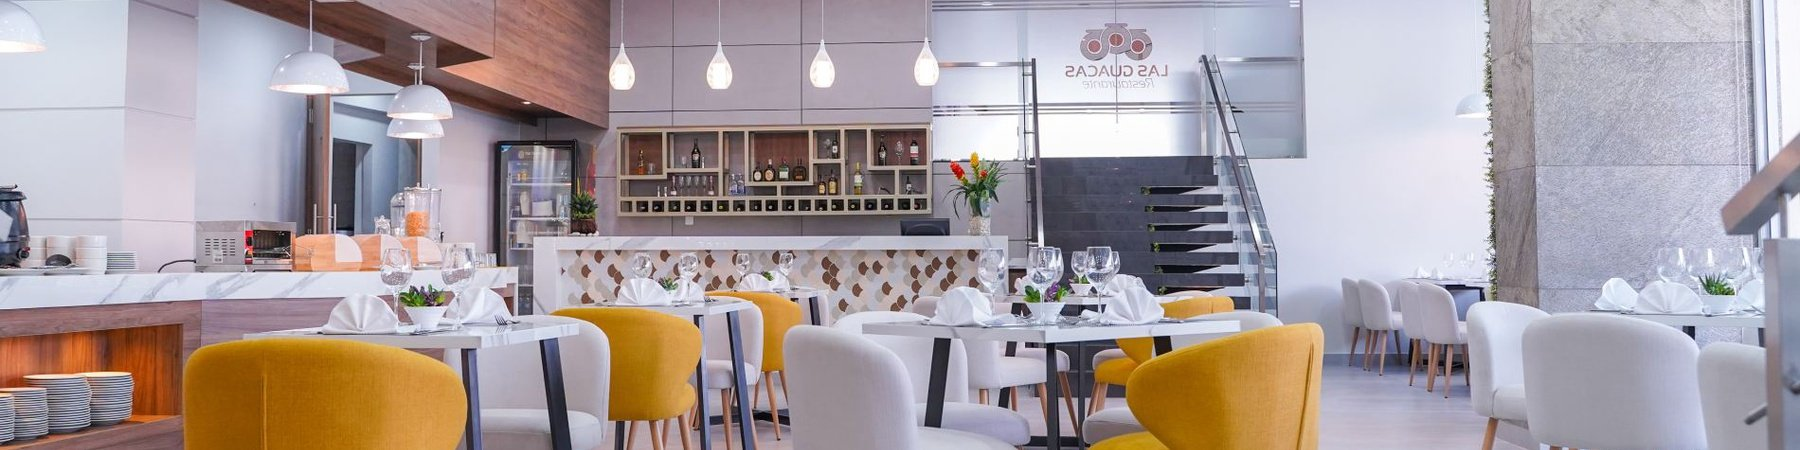 Restaurantes - Hotel Casino Internacional By Sercotel